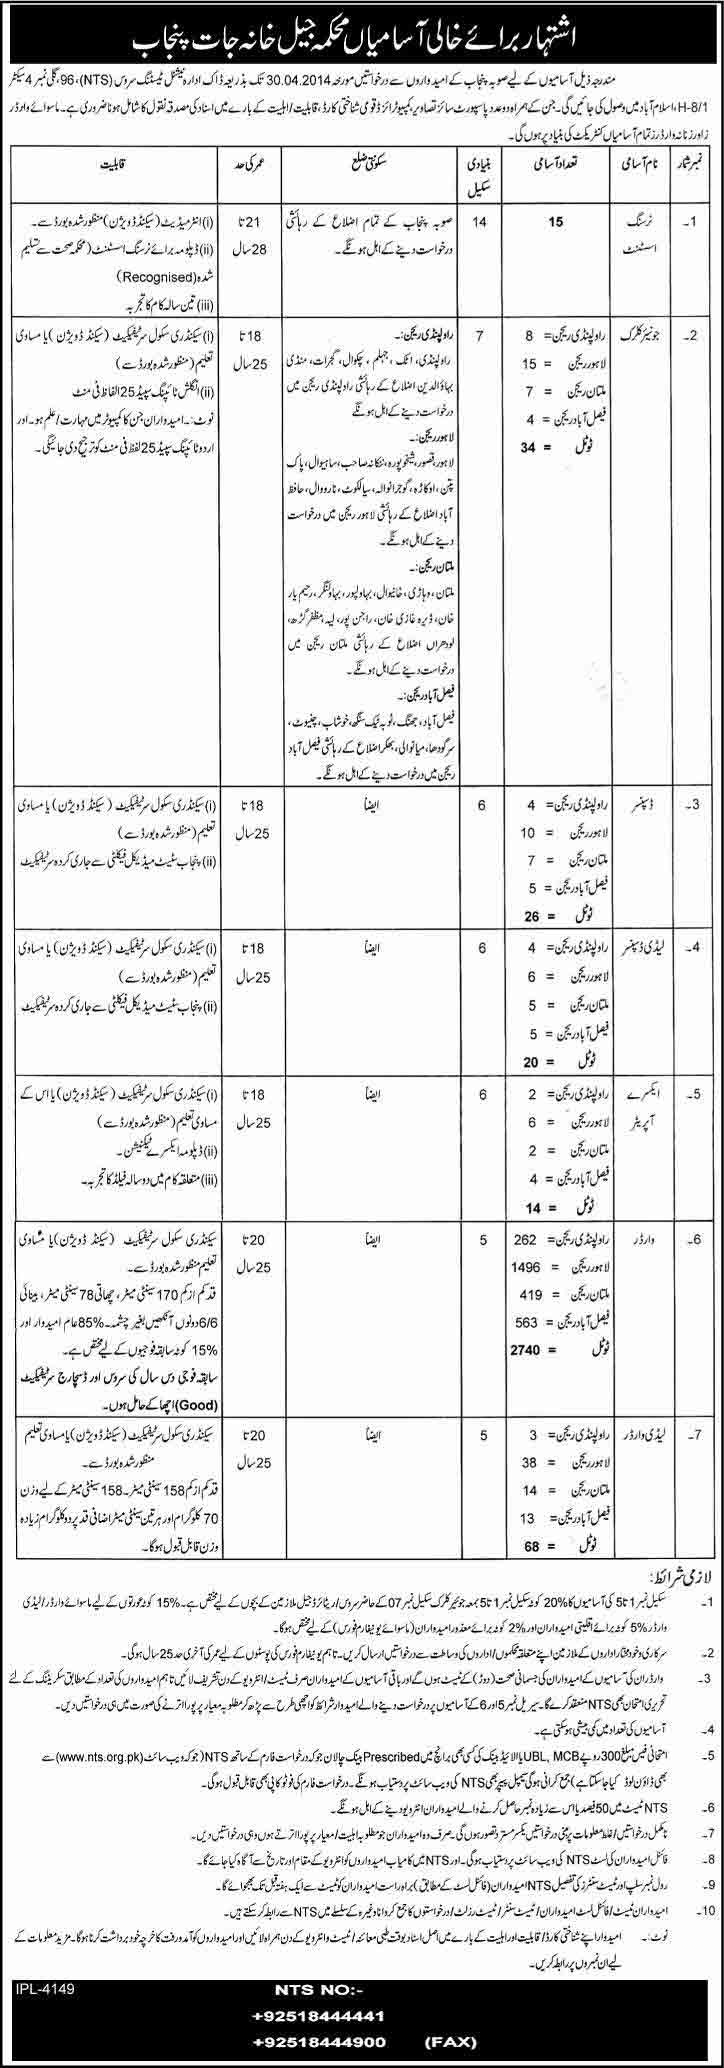 NTS-Inspectorate-of-Prisons-Punjab-Jobs